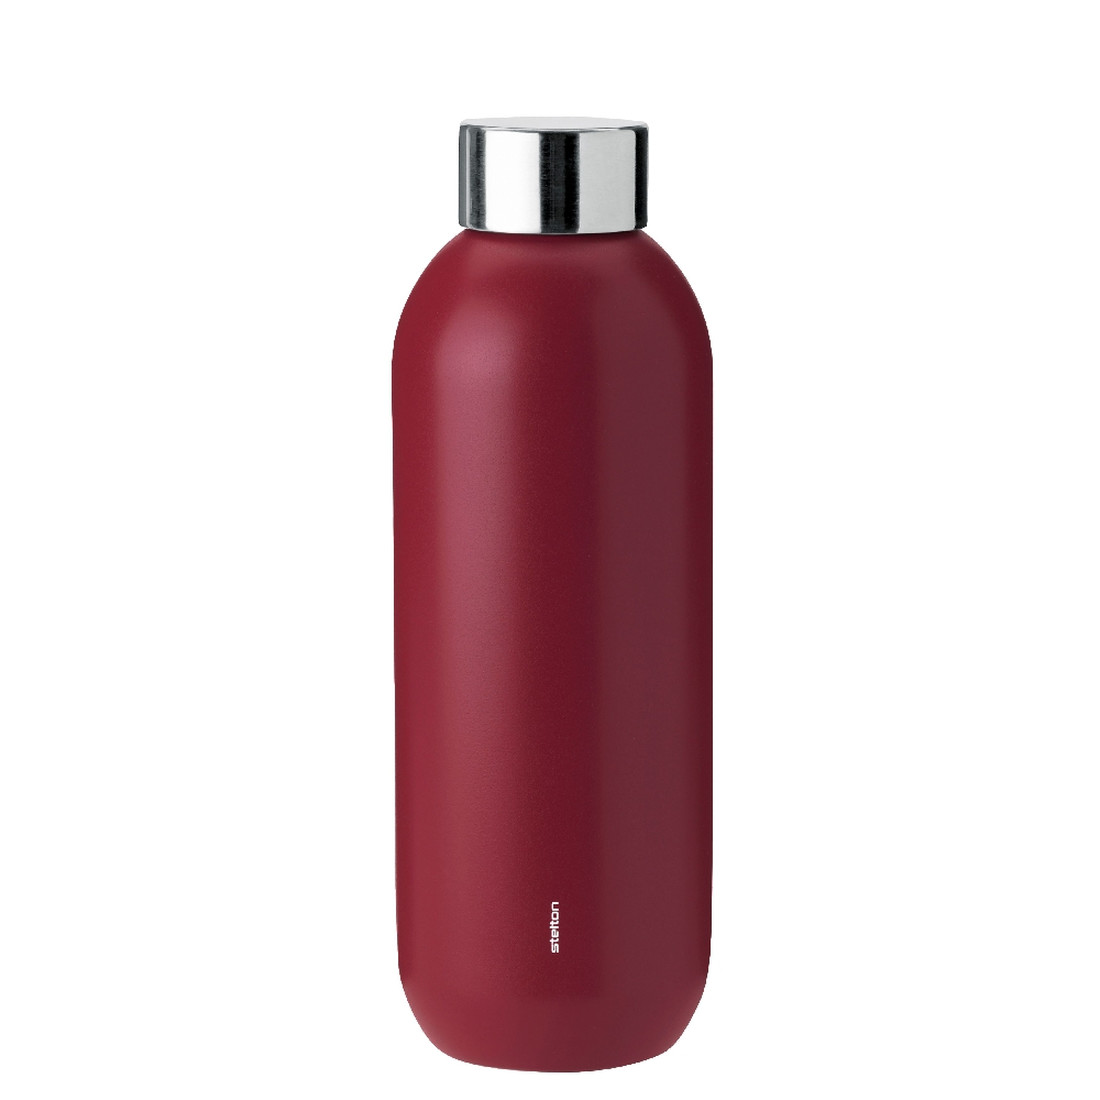 Keep Cool Thermosflasche 0.6 l - warm maroon by stelton